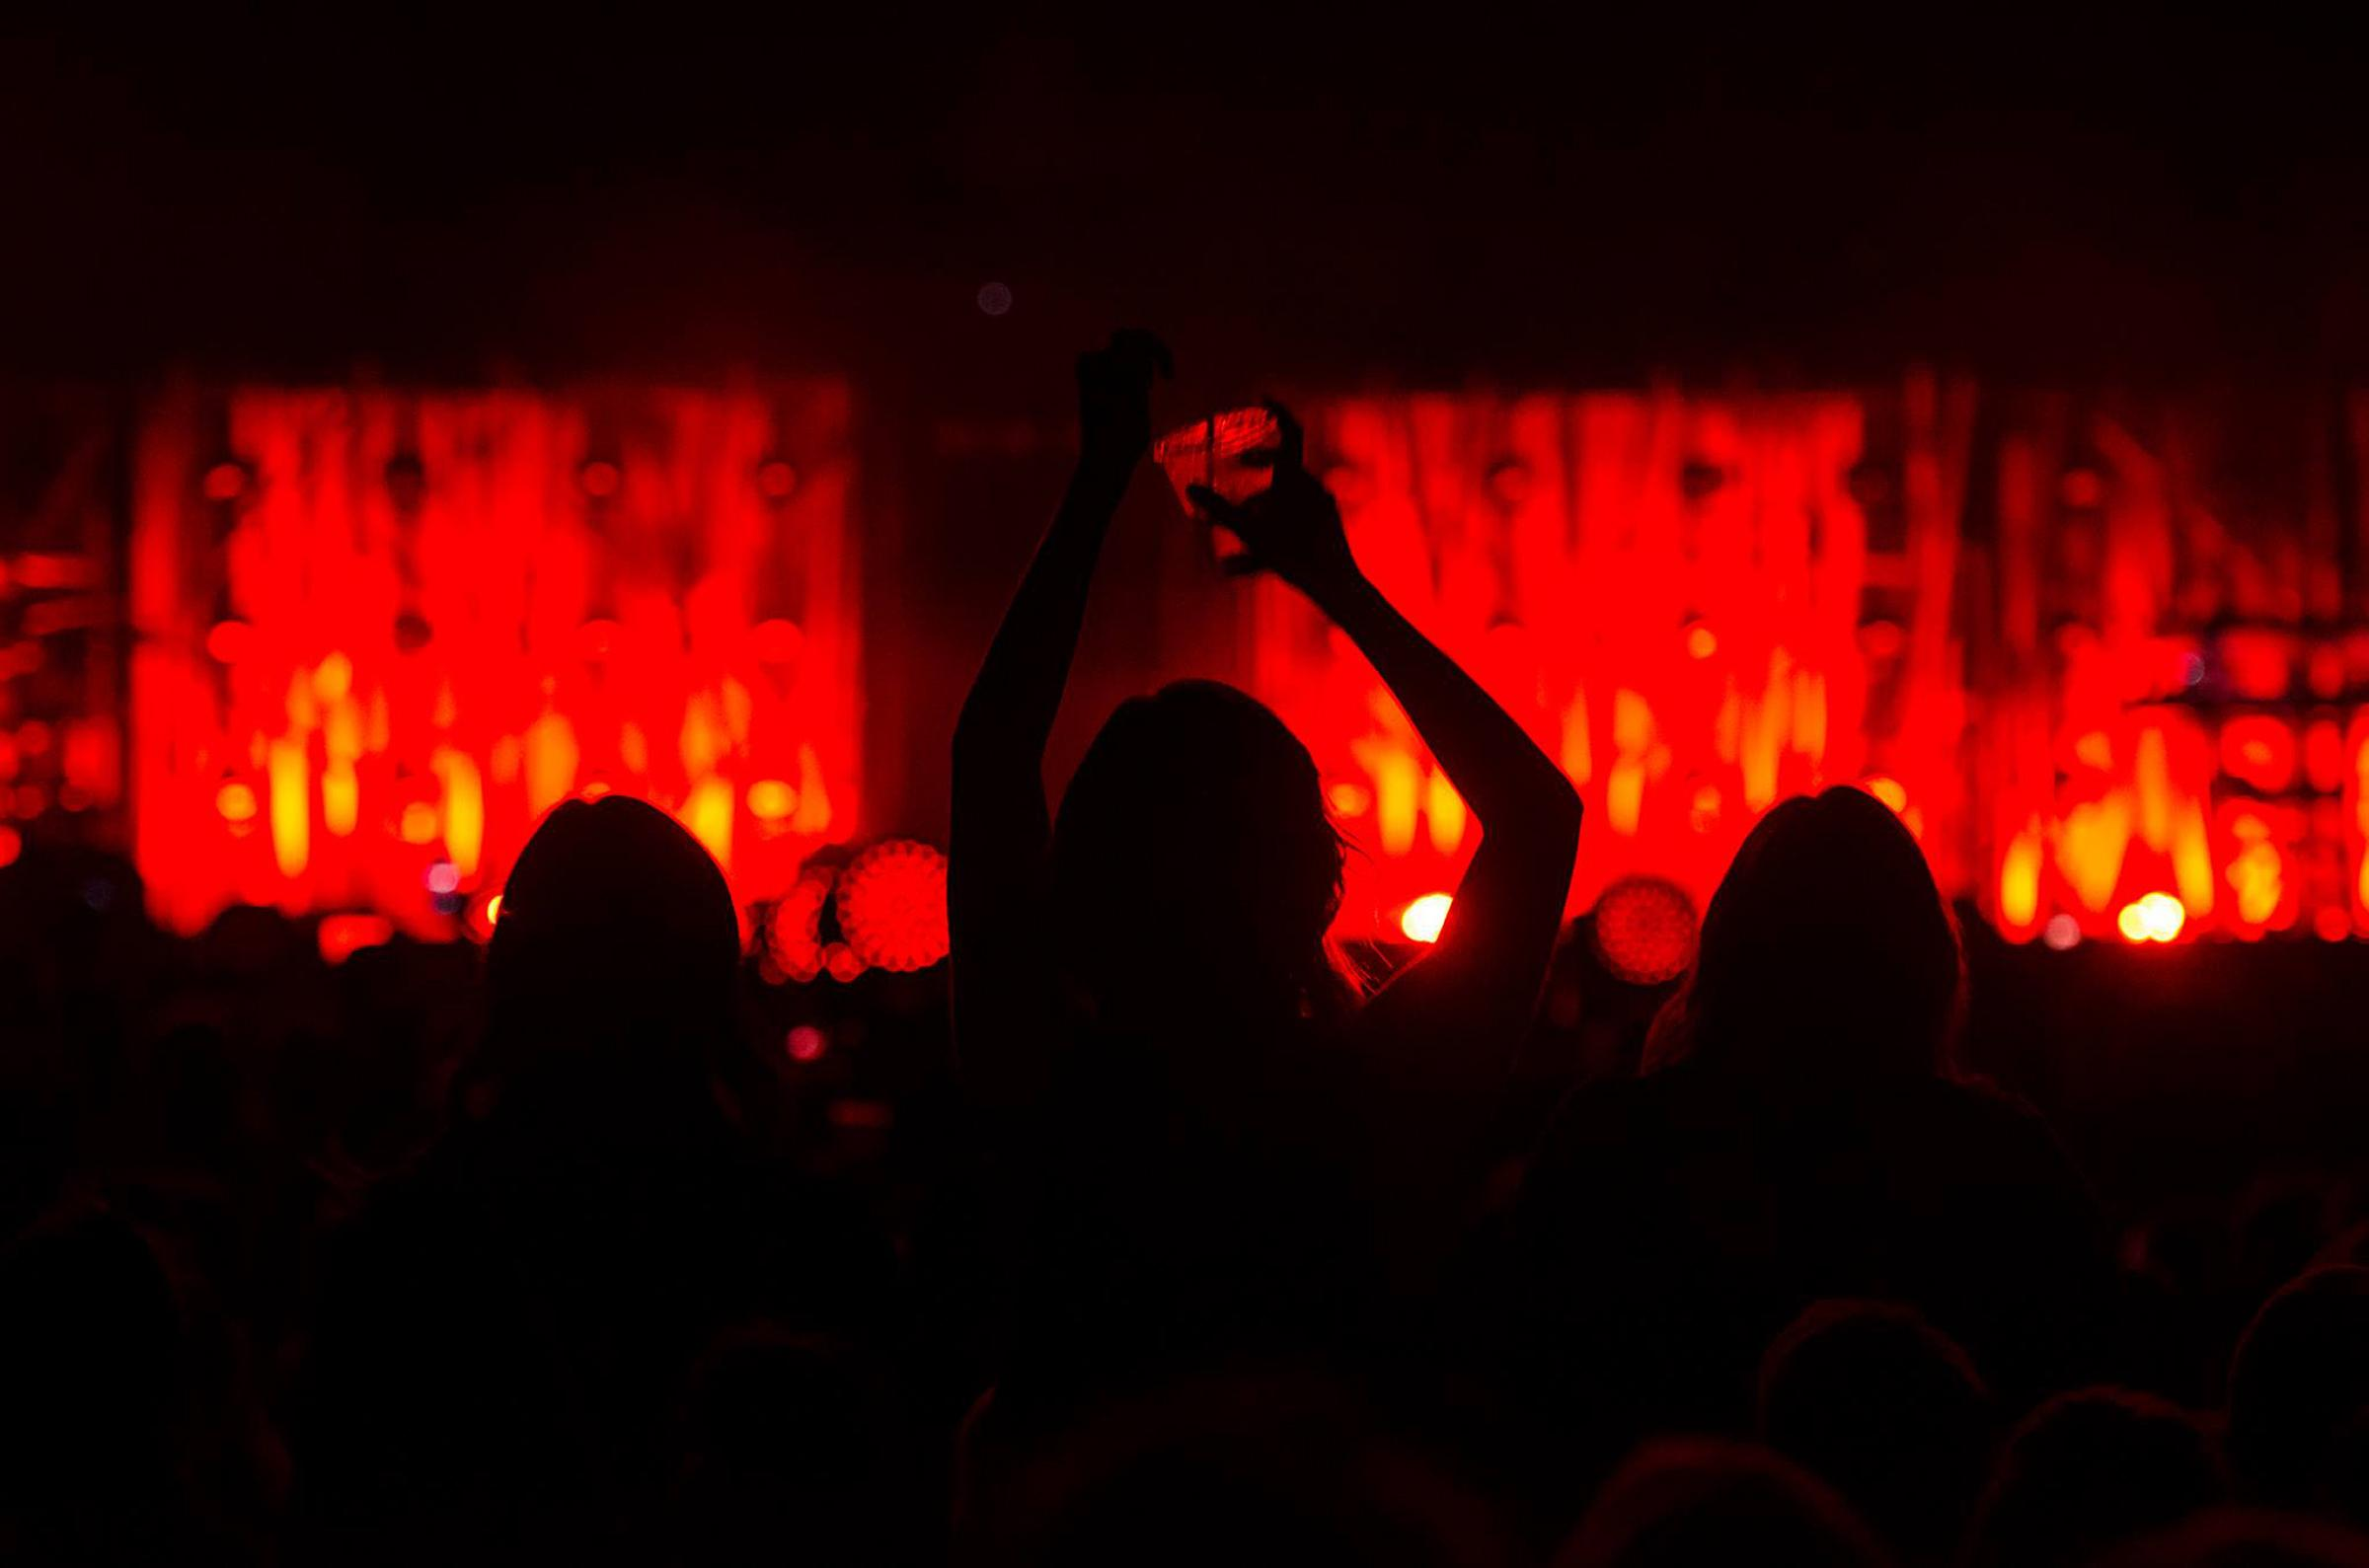 Silhouette of a large crowd of people facing a lighted stage at a concert.